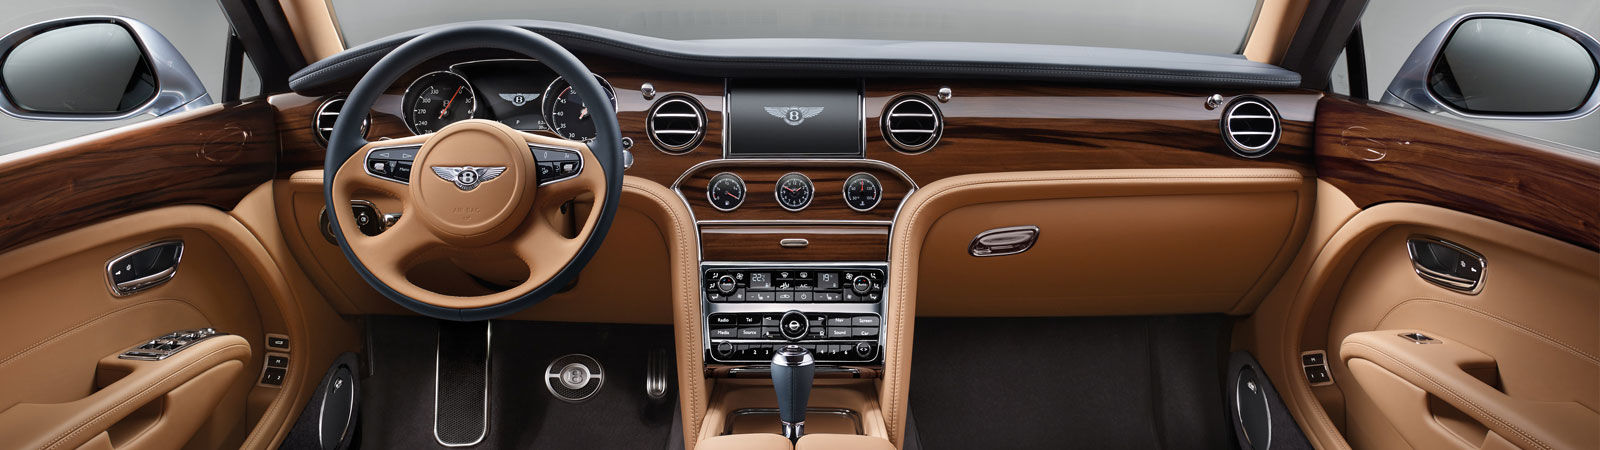 gt continental s jeremy average reviews a bentley car cost of clarkson the review